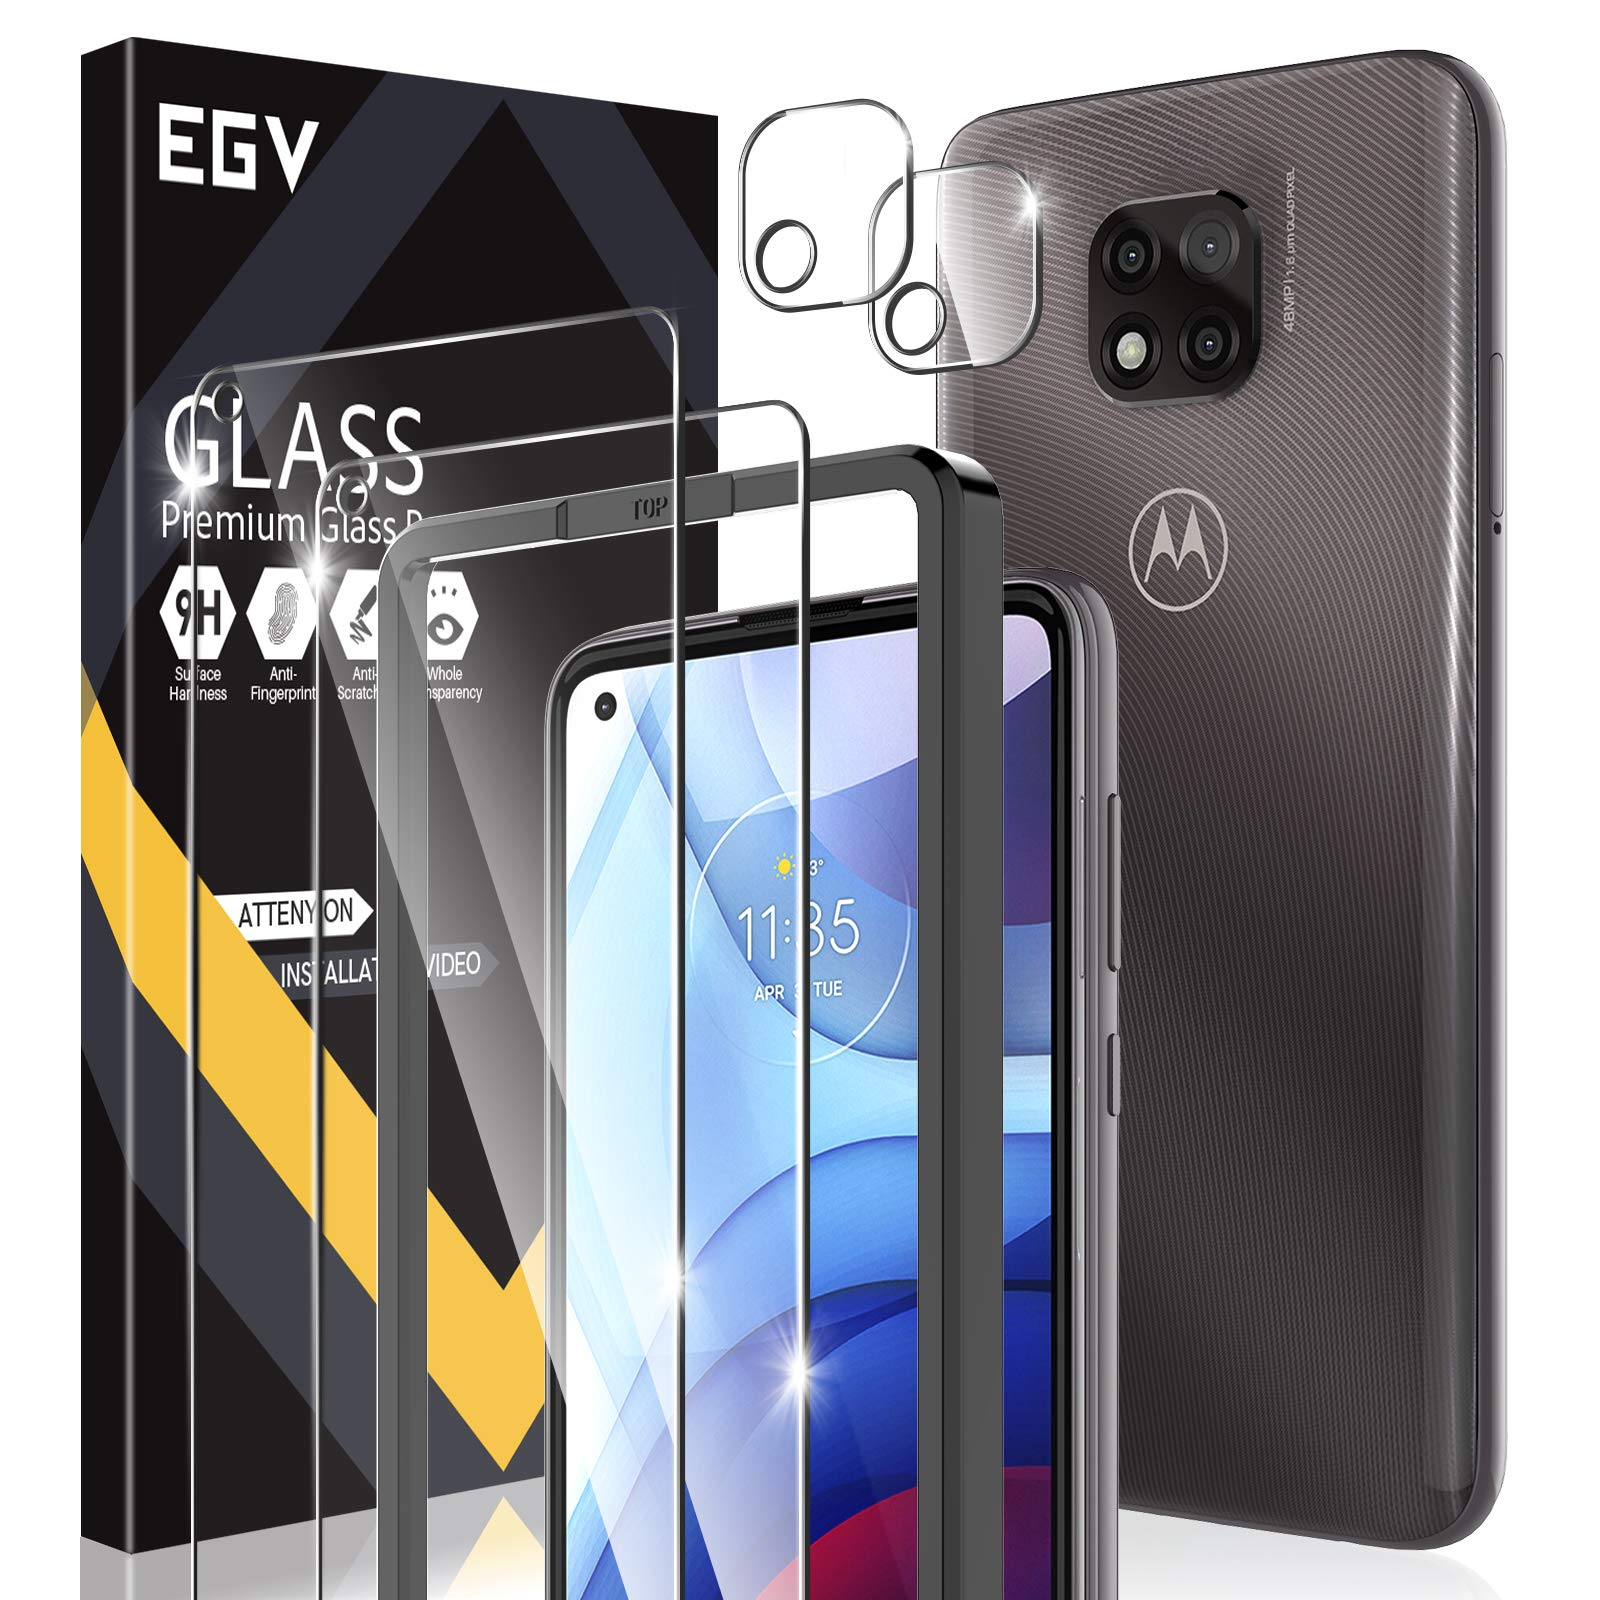 4 Pack EGV 2pcs Screen Protector + 2pcs Camera Lens Protector Compatible with Motorola Moto G Power 2021, Not for Moto G Power 2020, Tempered Glass, Easy Frame Installation, HD Ultra-Thin